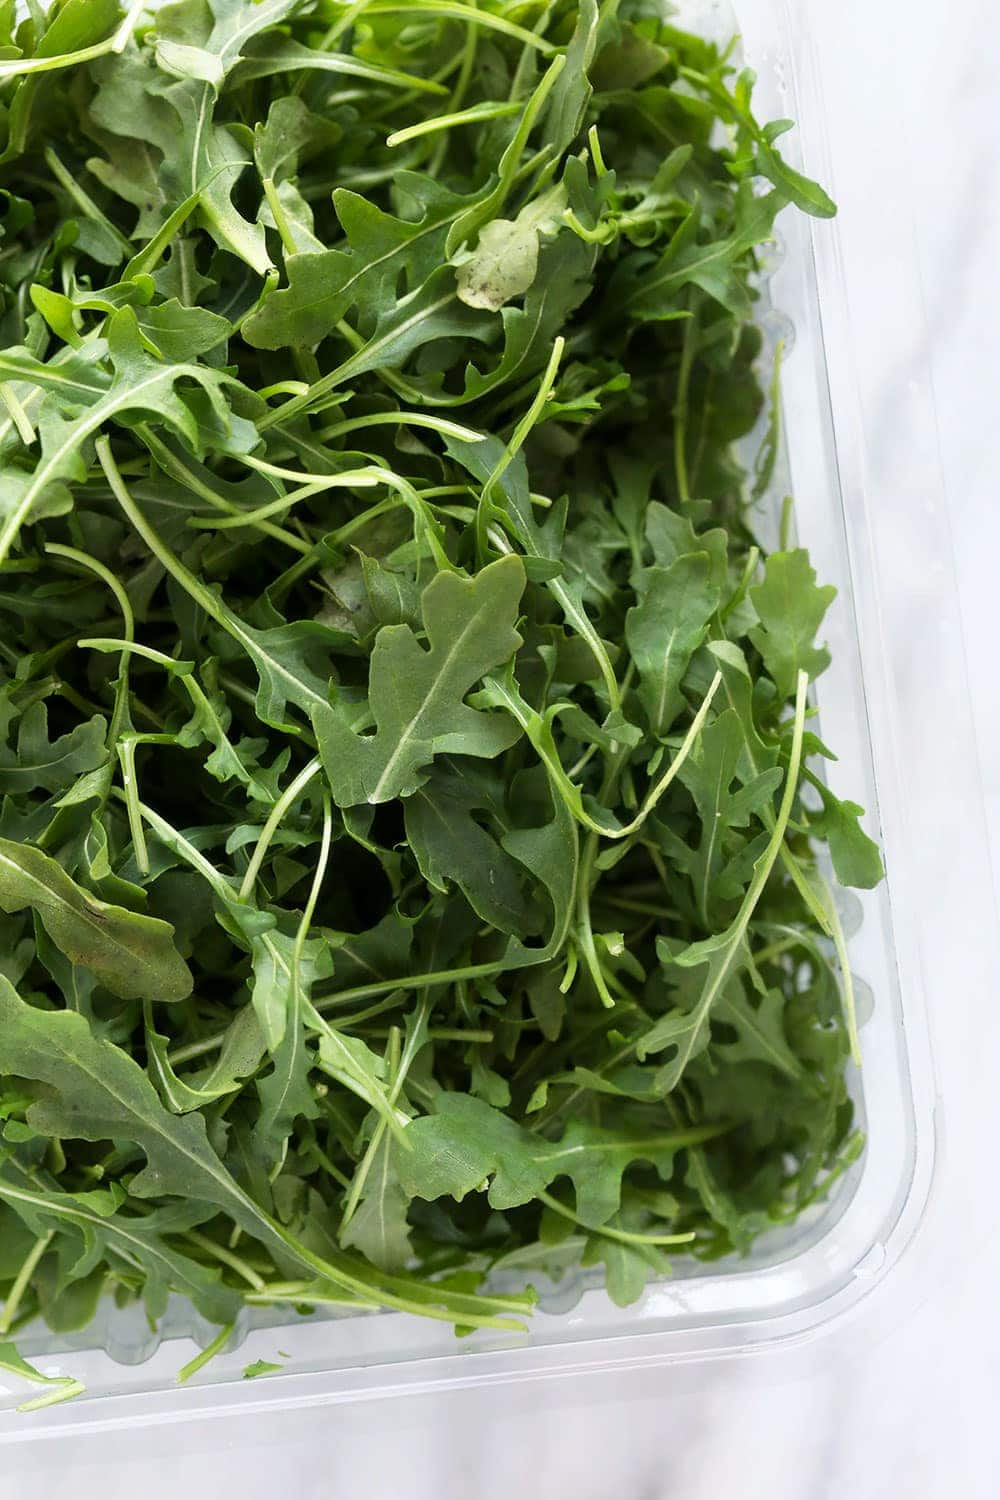 Arugula in a container